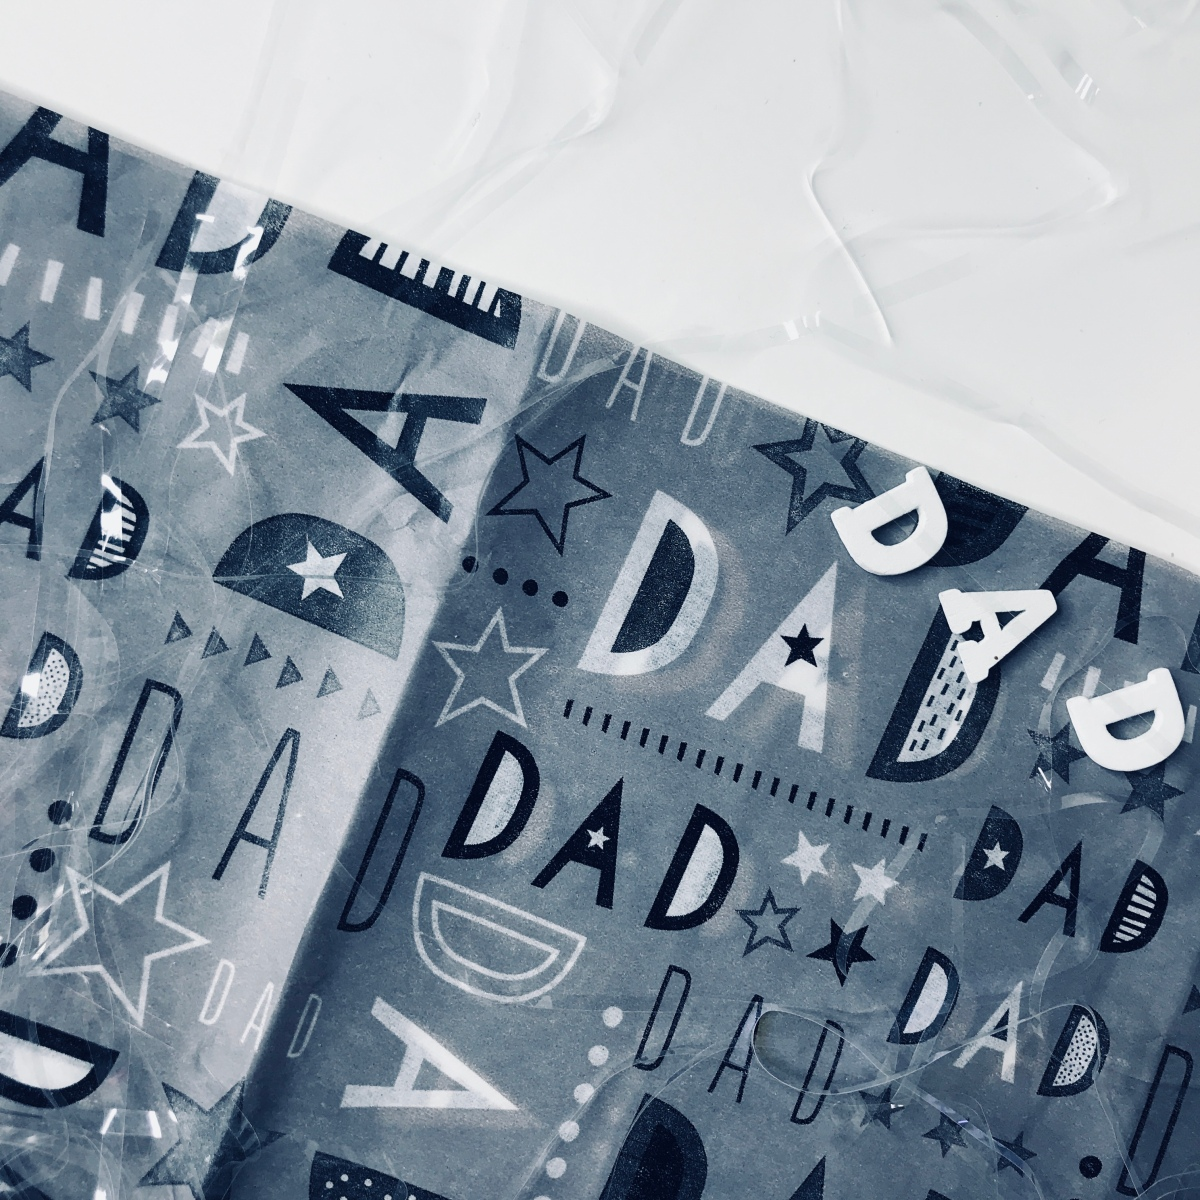 Personalise your Father's Day presents